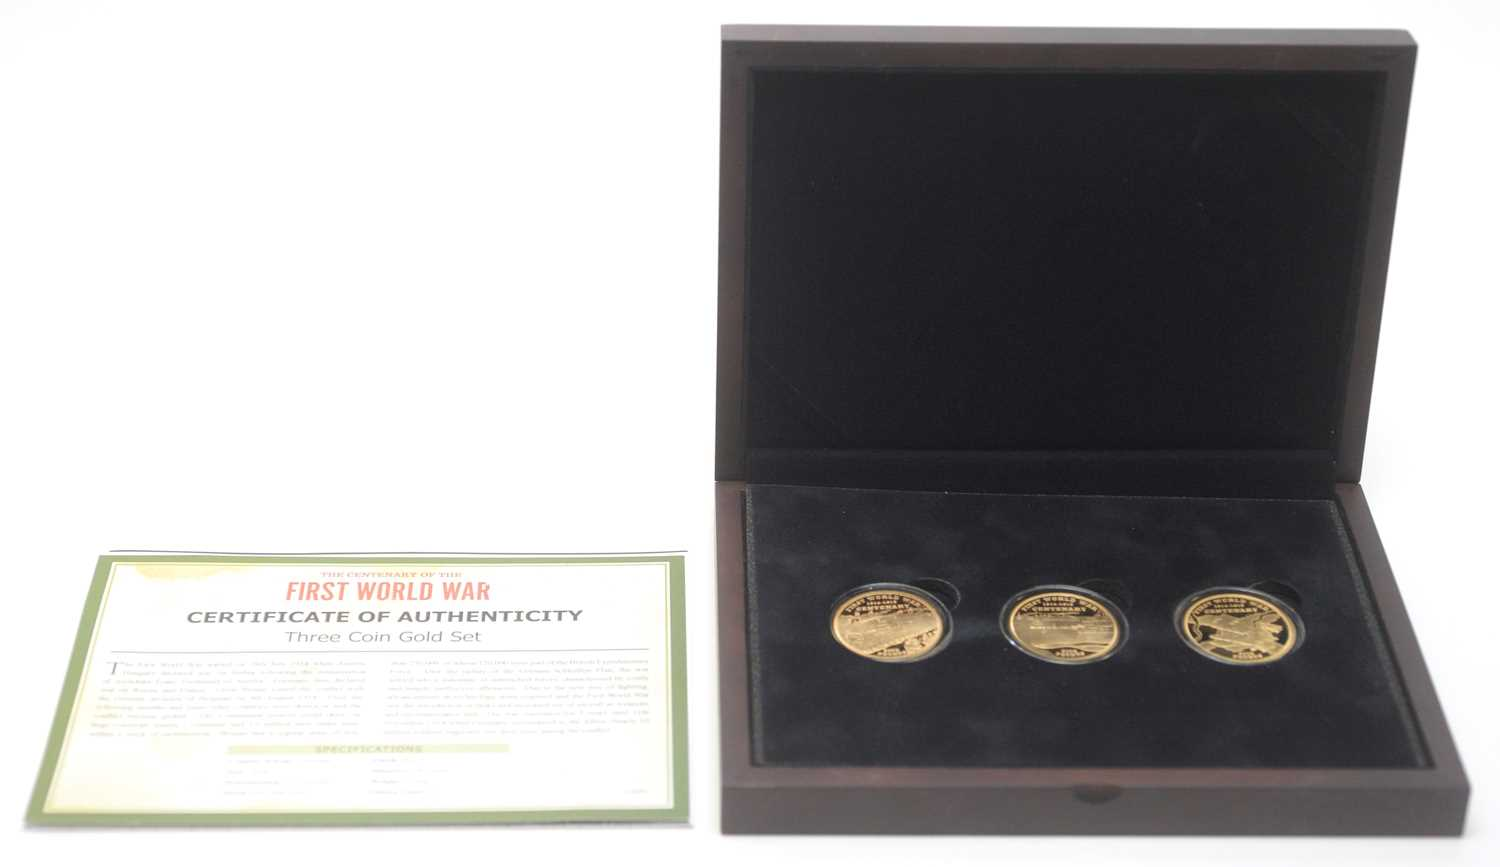 2 - The Centenary of the First World War three coin gold set